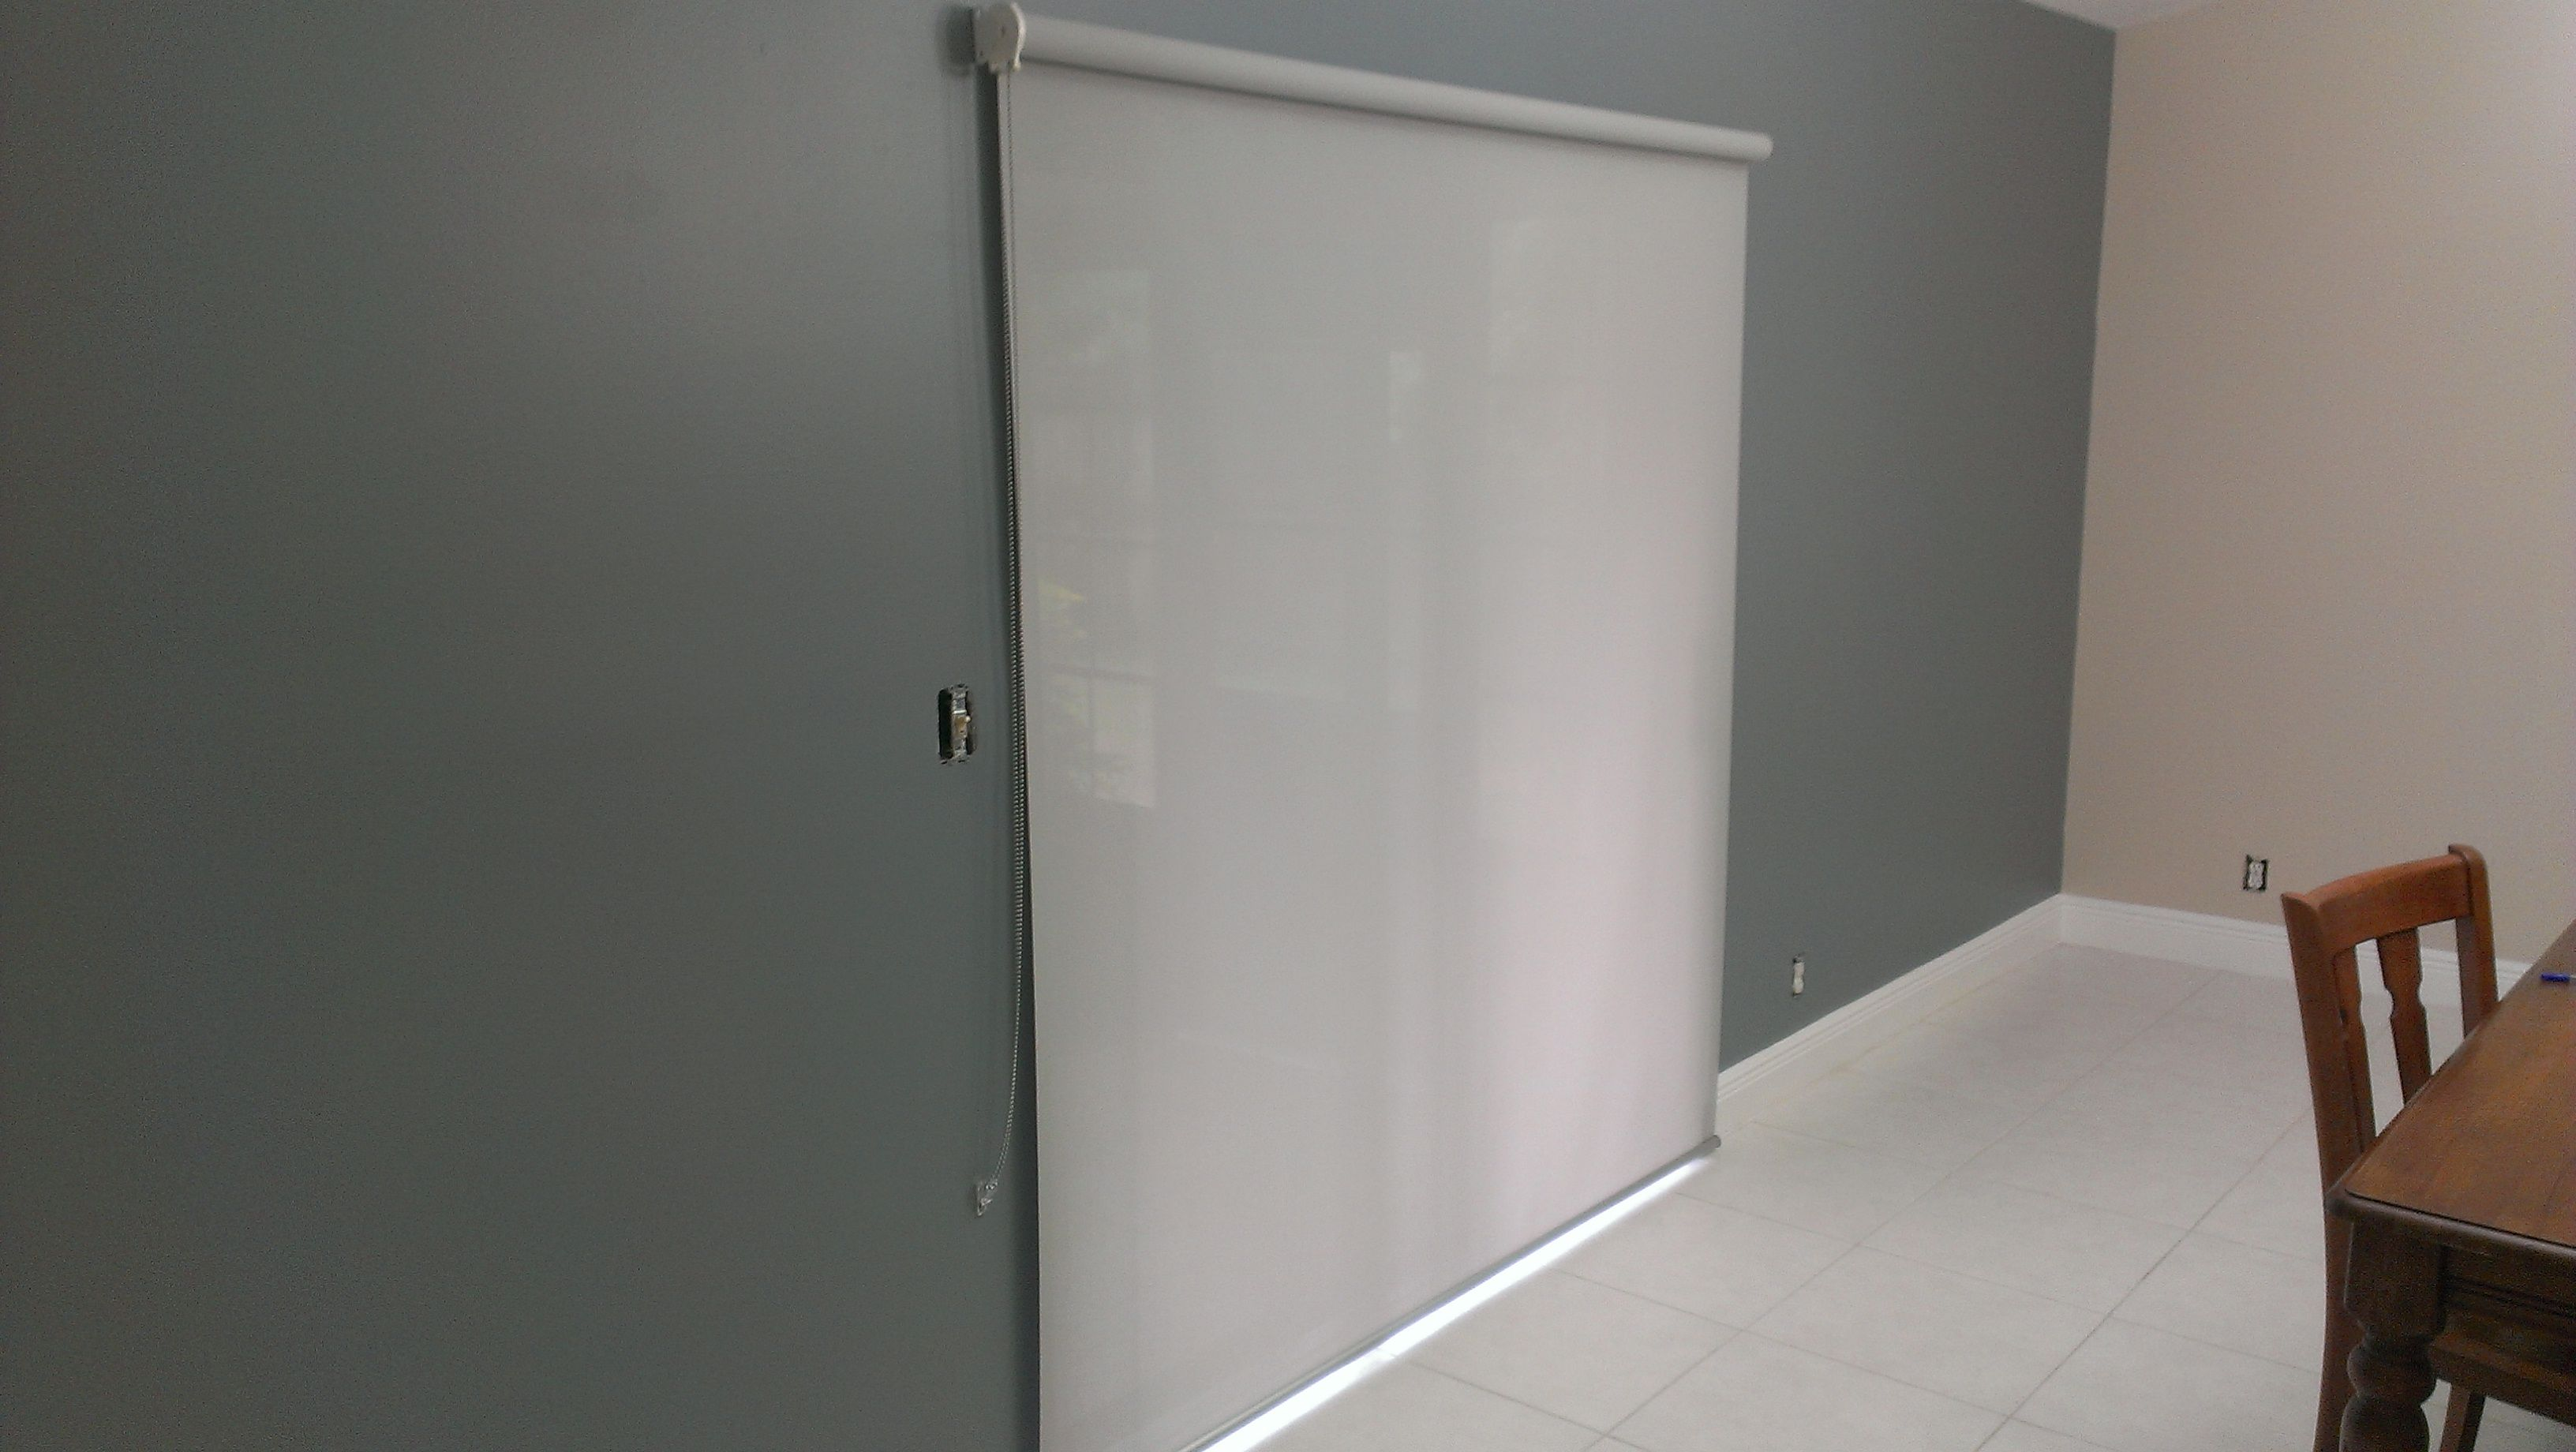 bunnings home pocket coolest door on track screen doors screens lowes small sliding secure rollers replacement